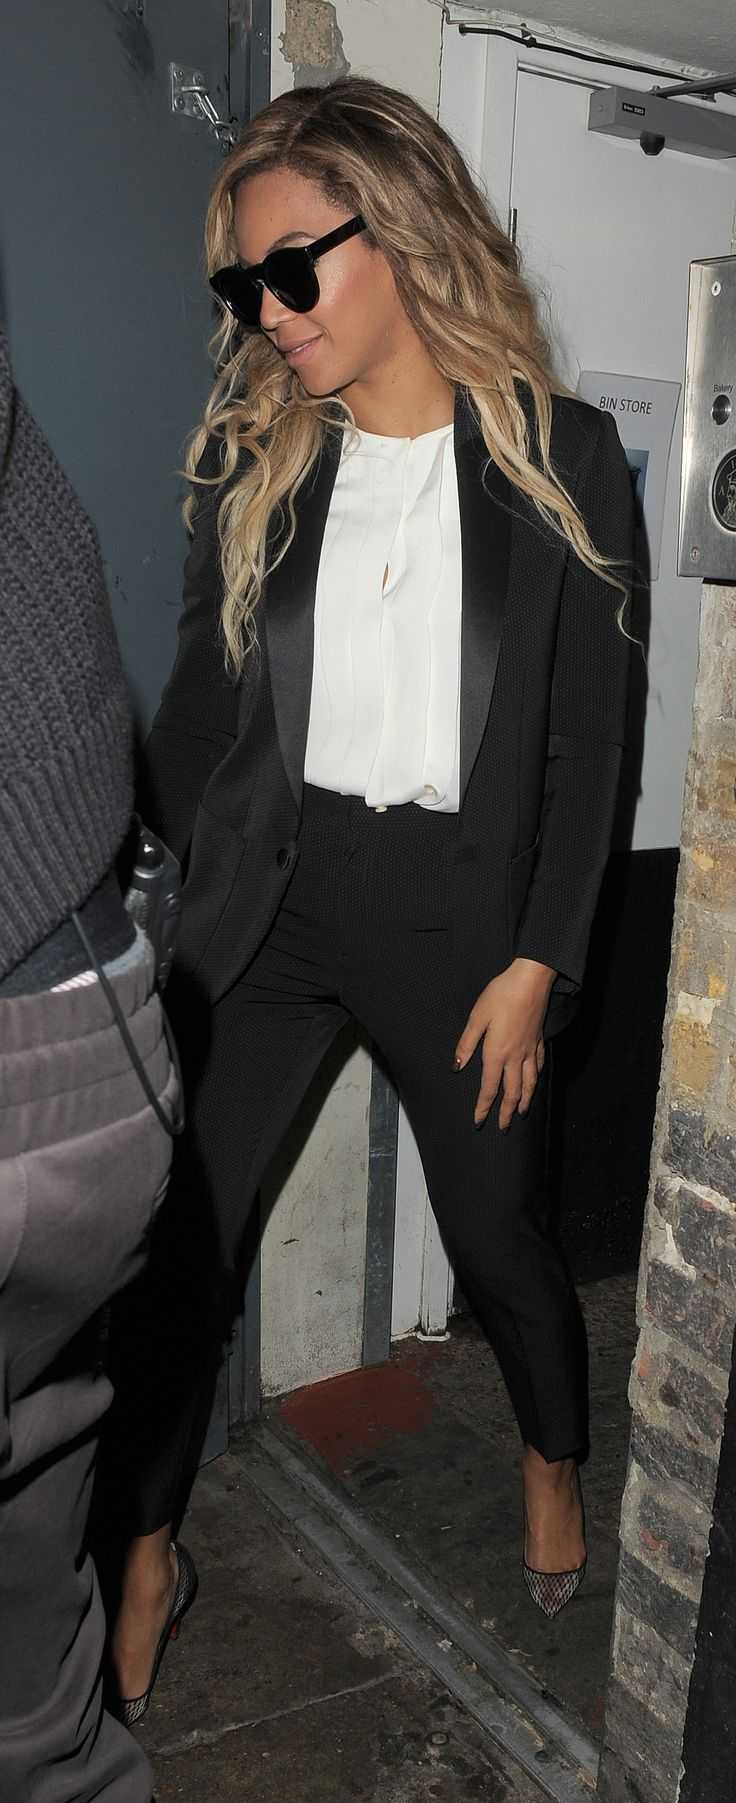 Going for a classic look in black trousers, a black tuxedo jacket and white blouse. Who knew Beyoncé would provide such good interview outfit inspiration?